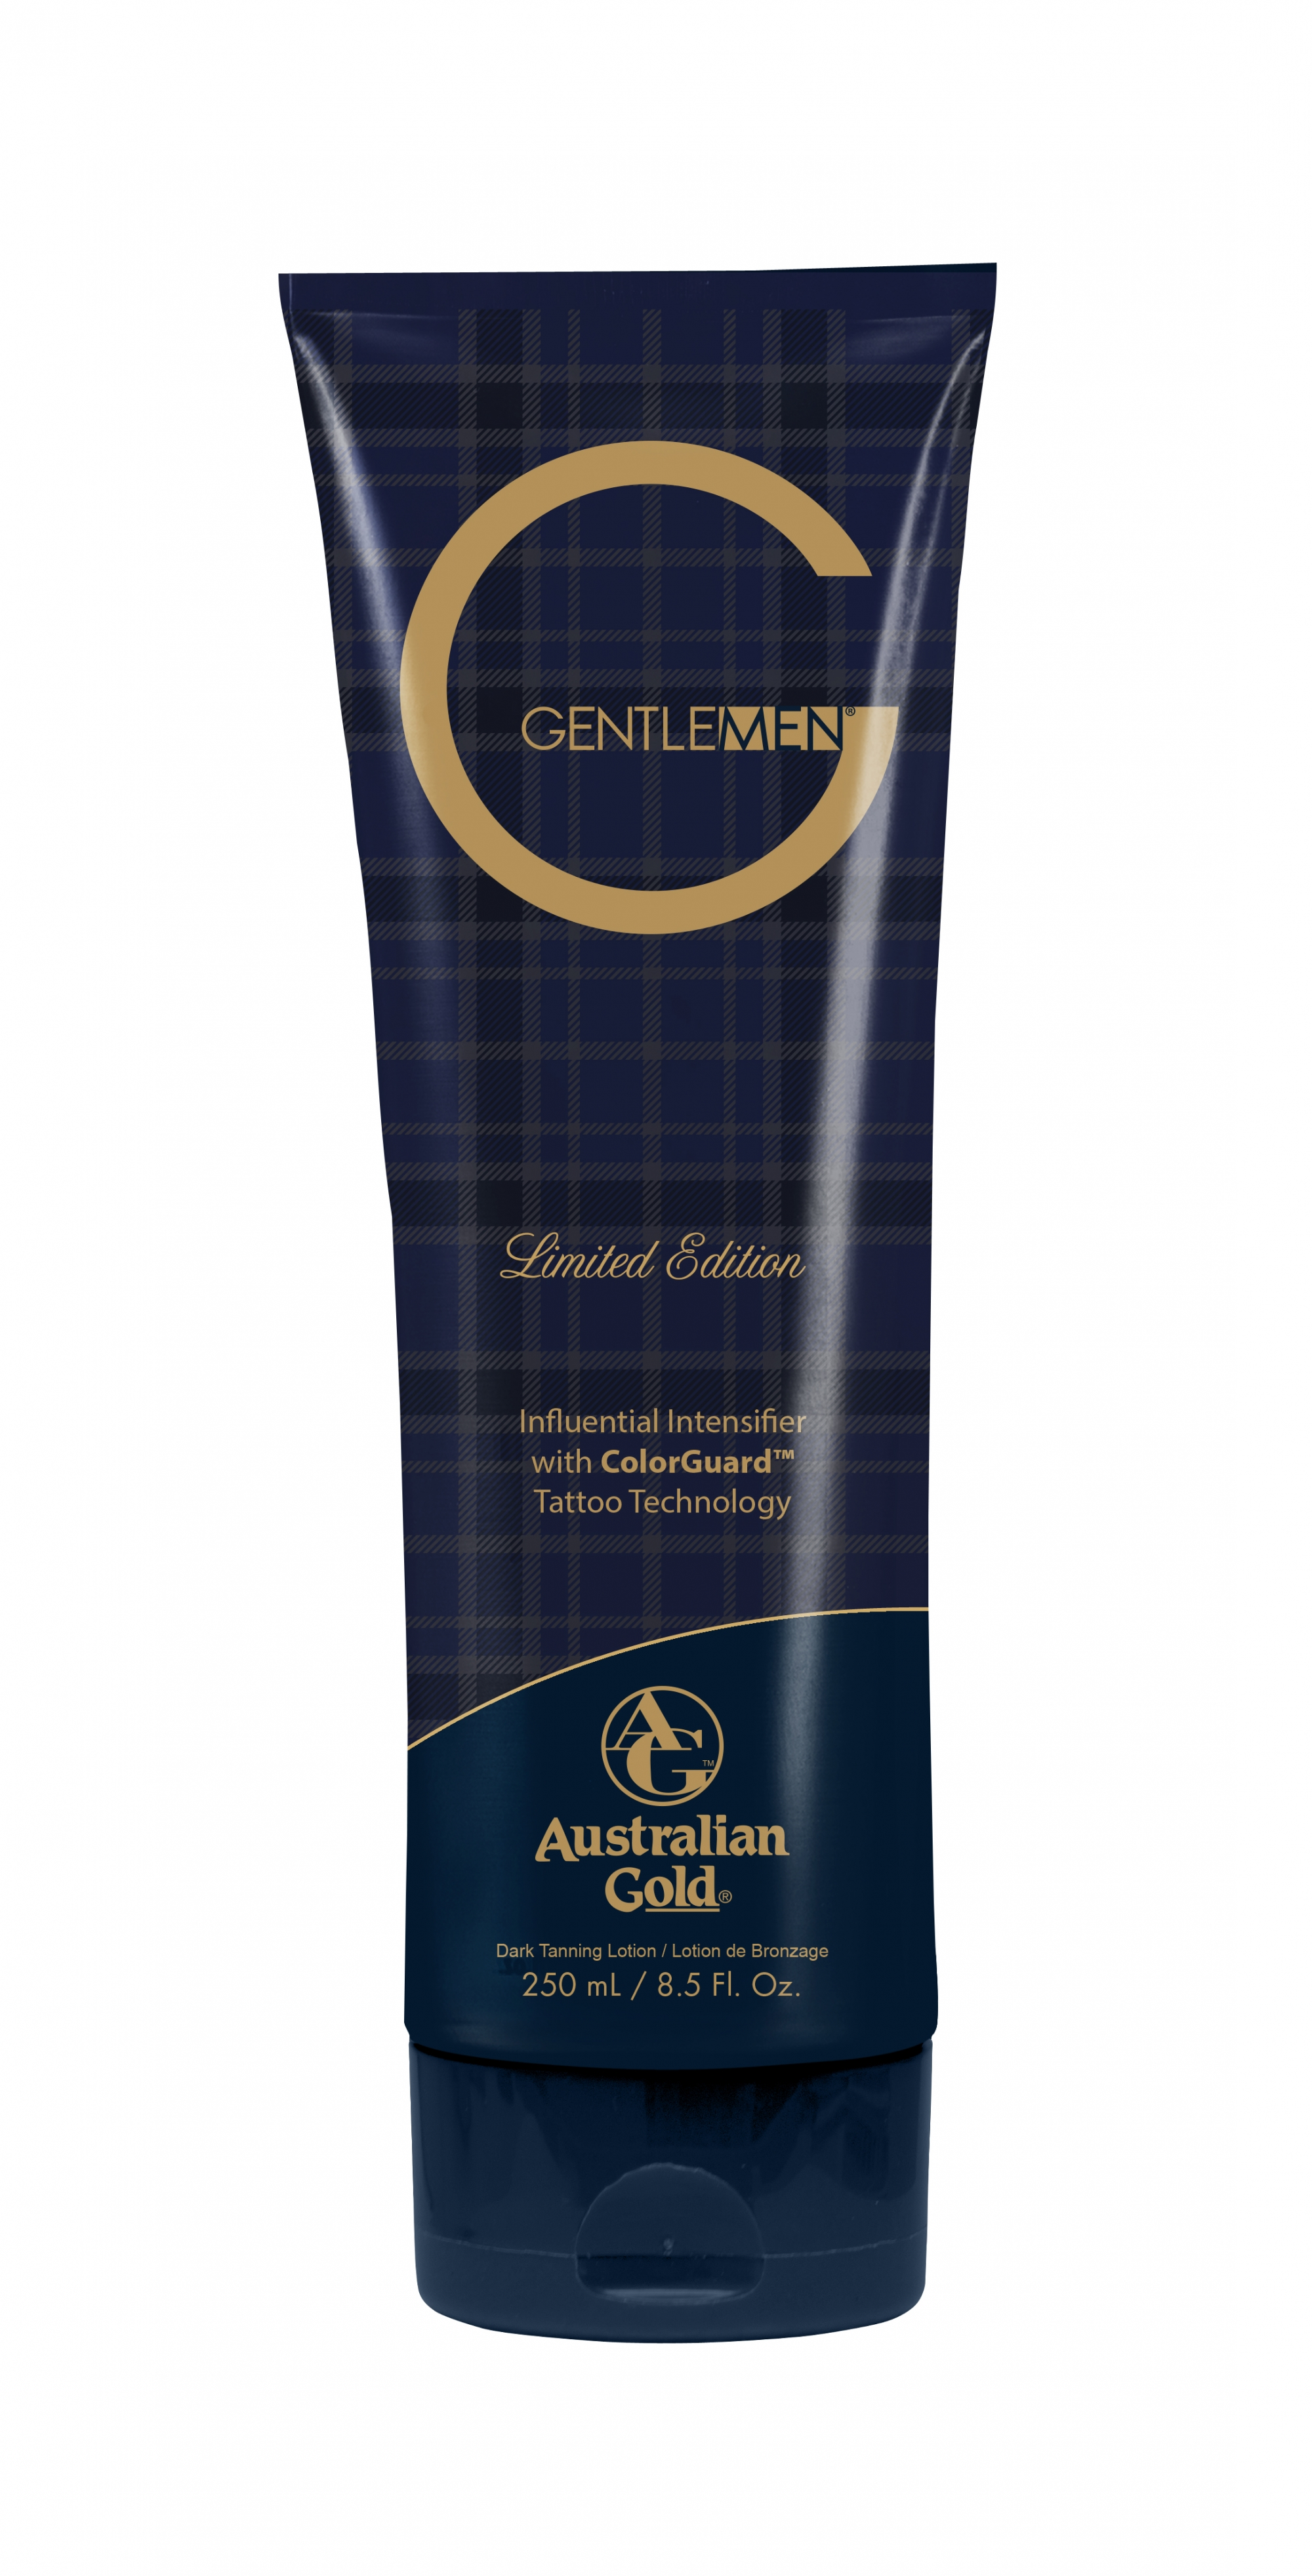 G Gentlemen® Limited Edition Intensifier